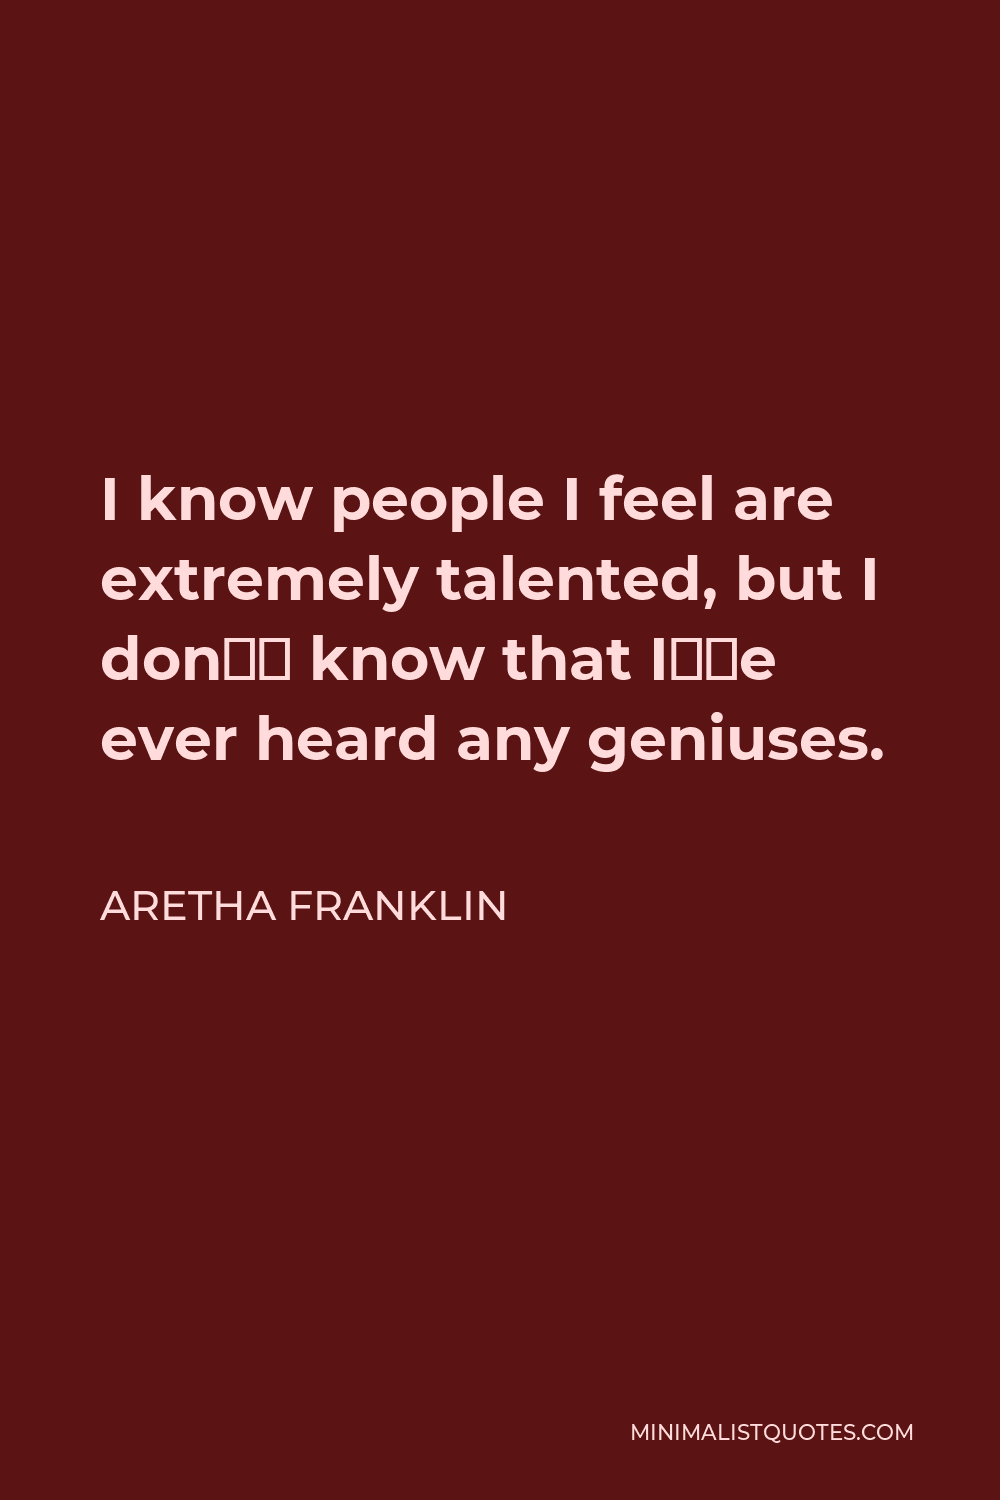 Aretha Franklin Quote - I know people I feel are extremely talented, but I don't know that I've ever heard any geniuses.